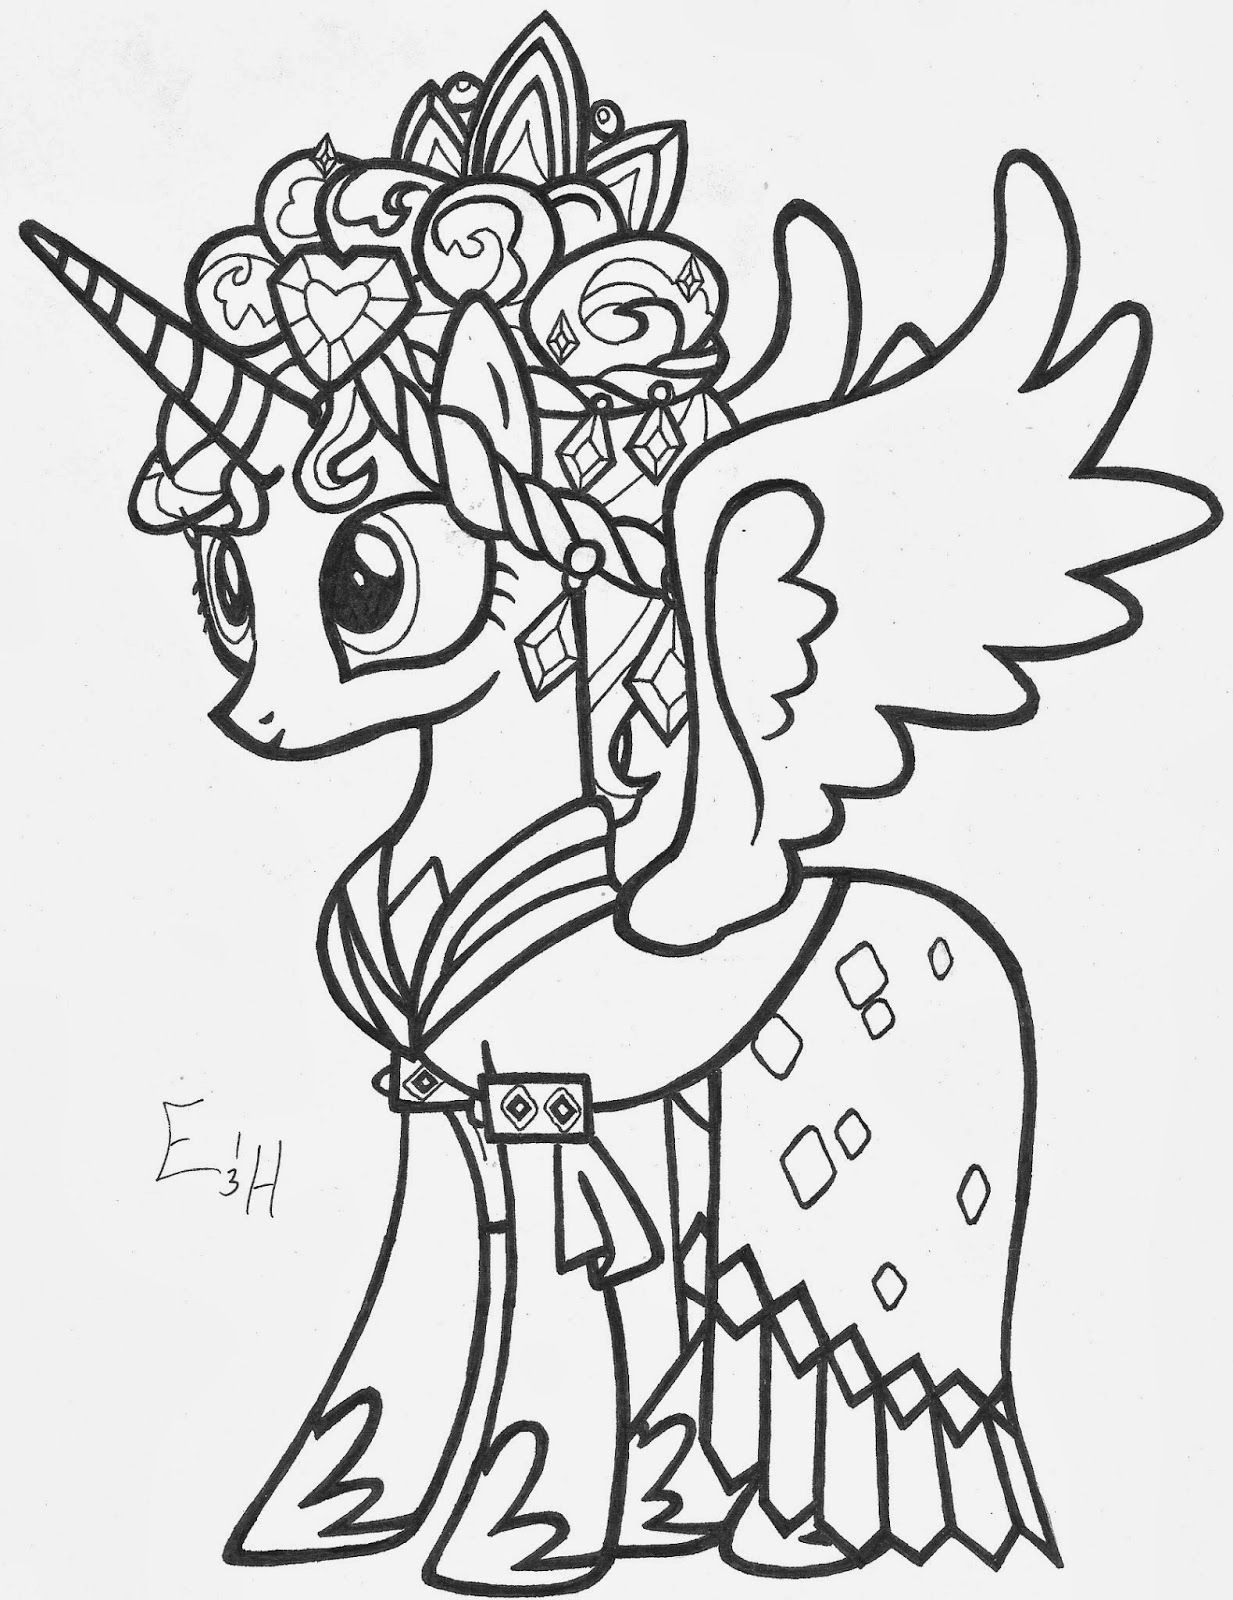 my little pony coloring pages princess cadence princess cadence my little pony coloring page coloring home princess pages pony my coloring cadence little